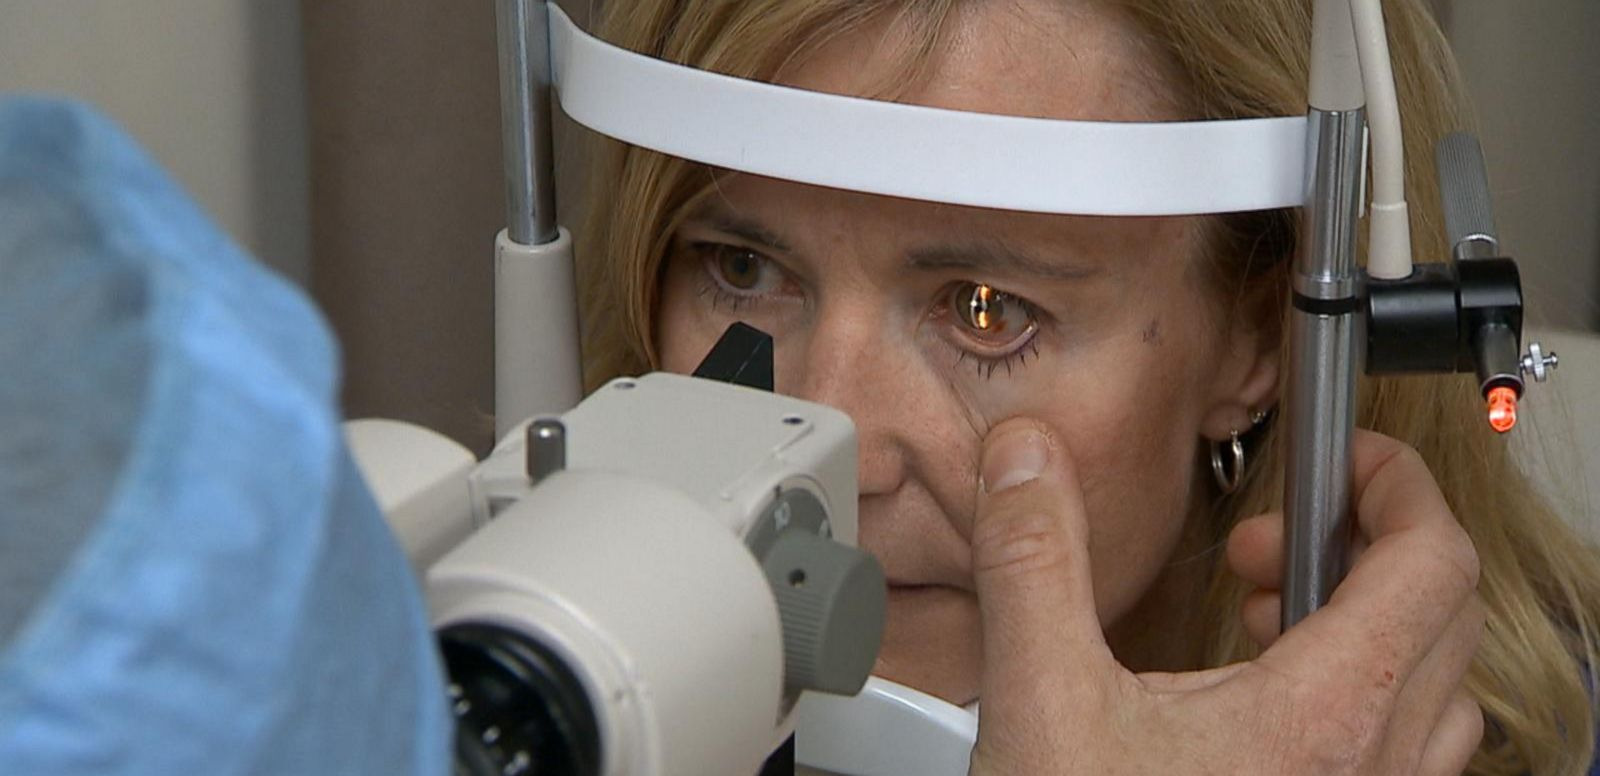 VIDEO: New Implant Procedure Improves Vision